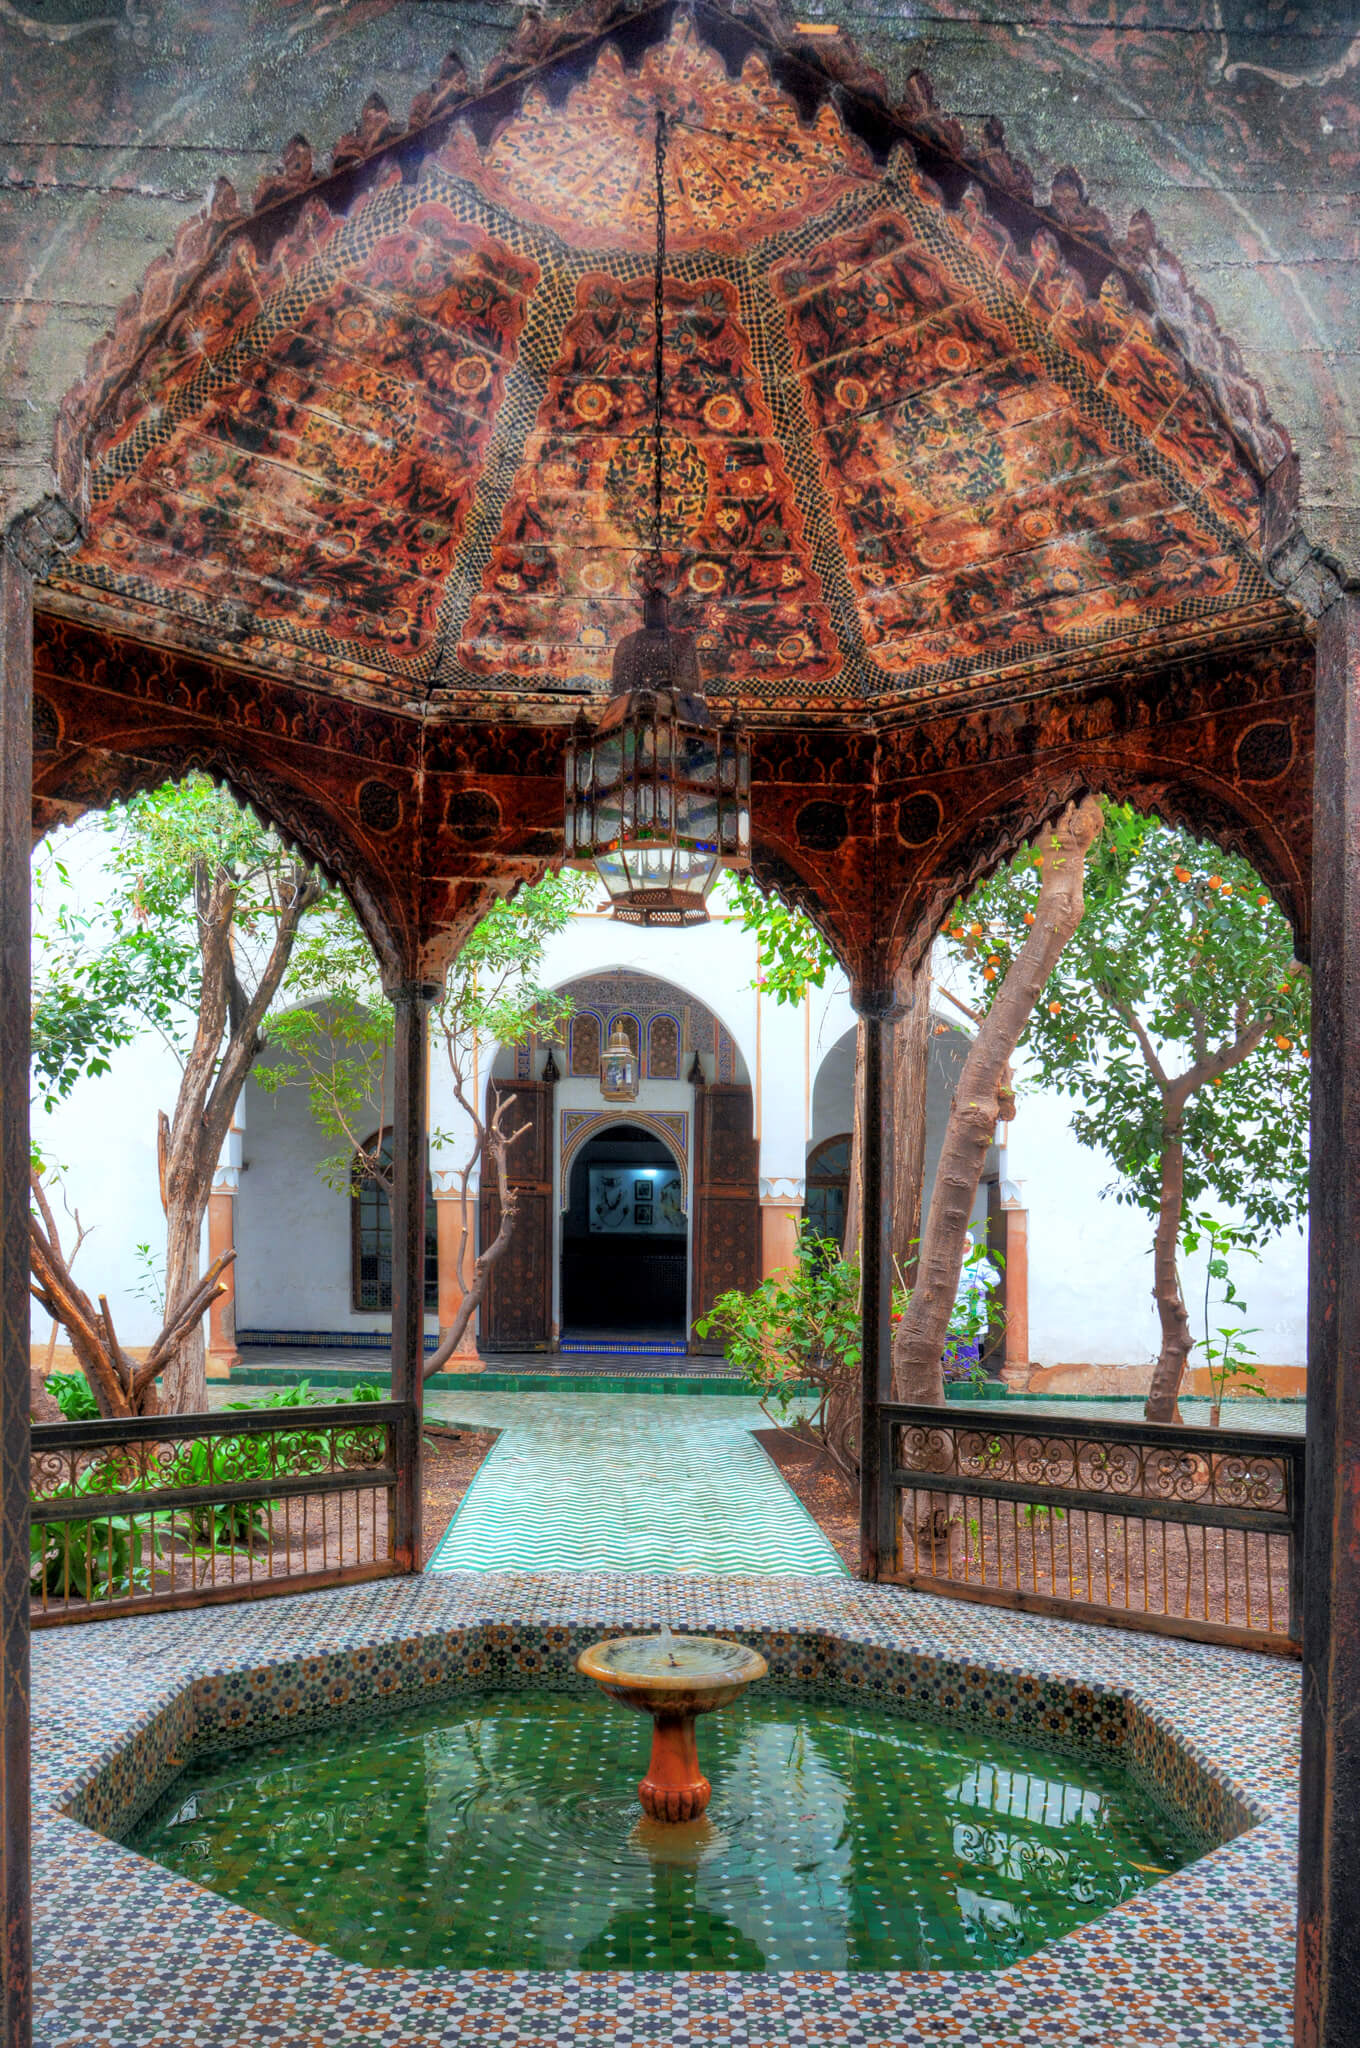 Sahara Desert Tour - Tap into the Magic of Marrakech where Old Meets New - Dar Si Said Museum of Moroccan Arts